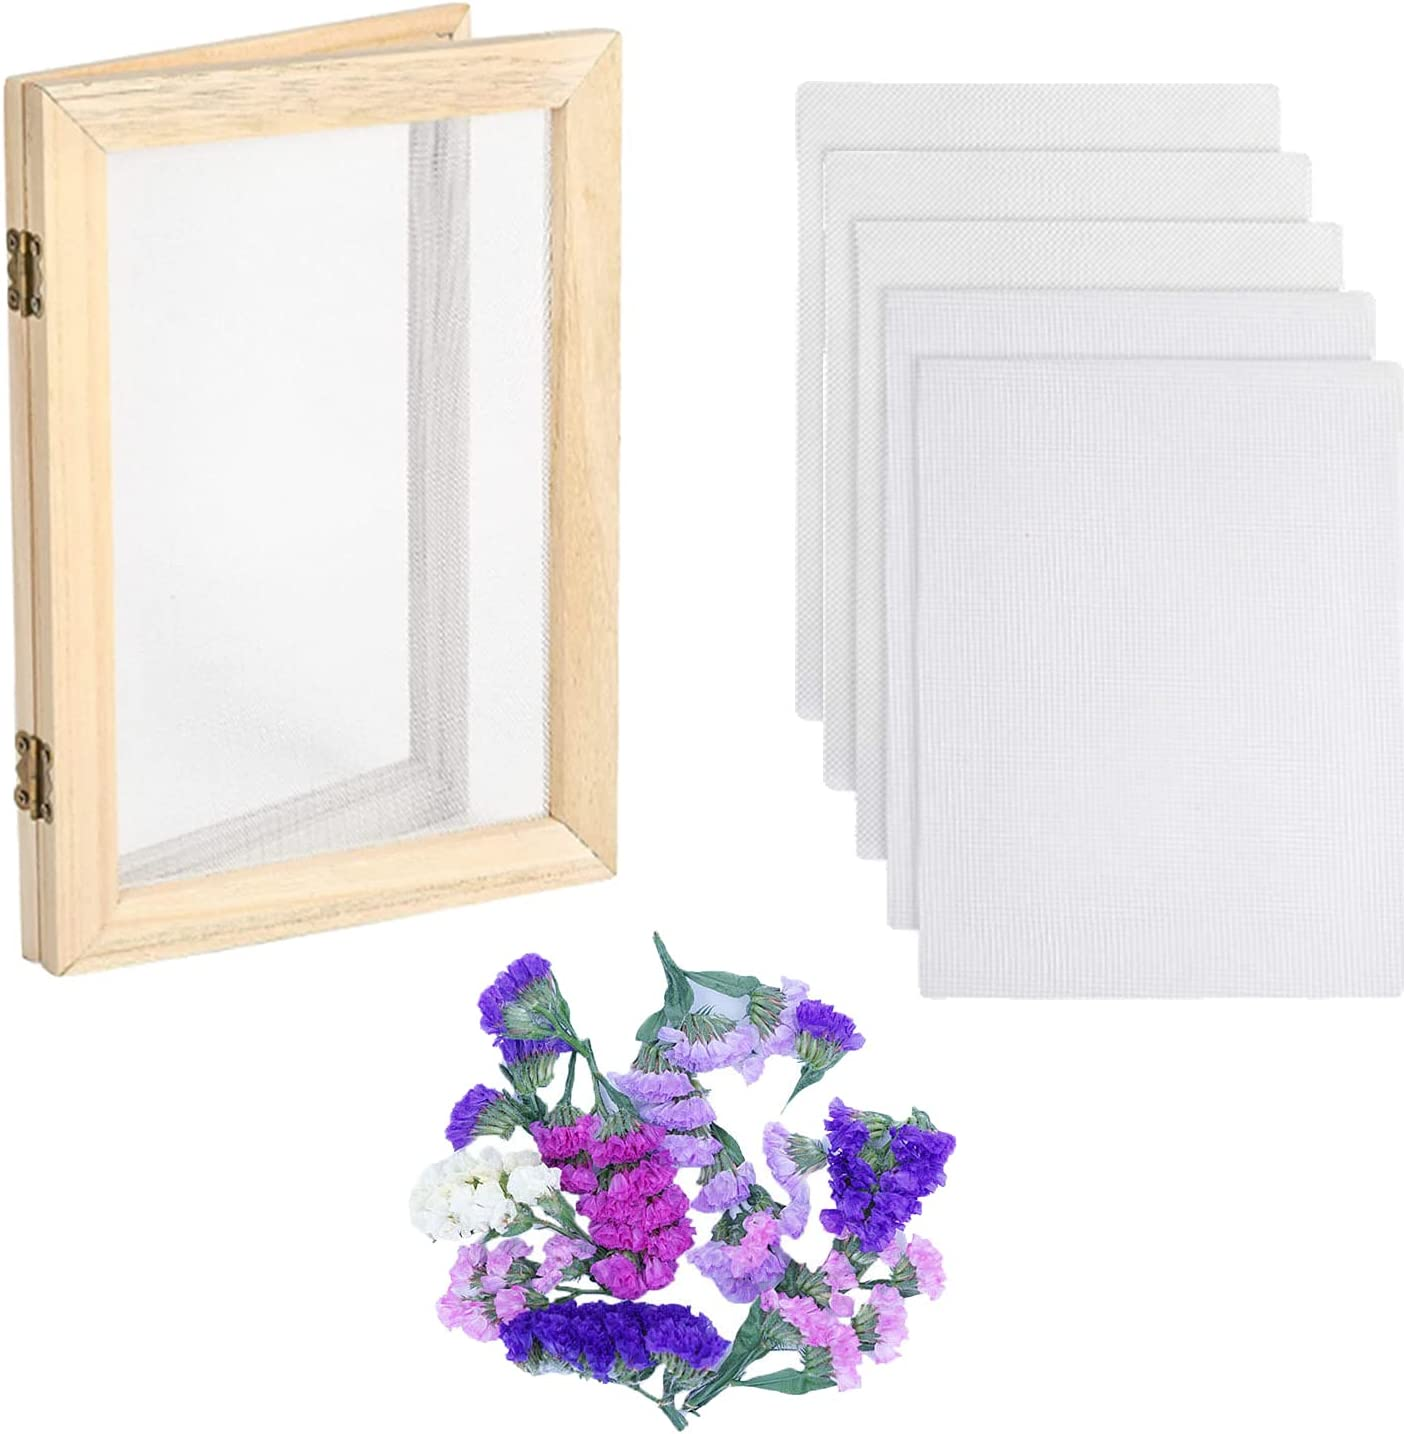 Paper Making Kit Mould and Deckle, Paper Making Recycled Paper Towel, Homemade Paper Making Kit 5 X 7 Inch Screen Printing Frame for DIY Paper Craft and Dried Flower Handcraft